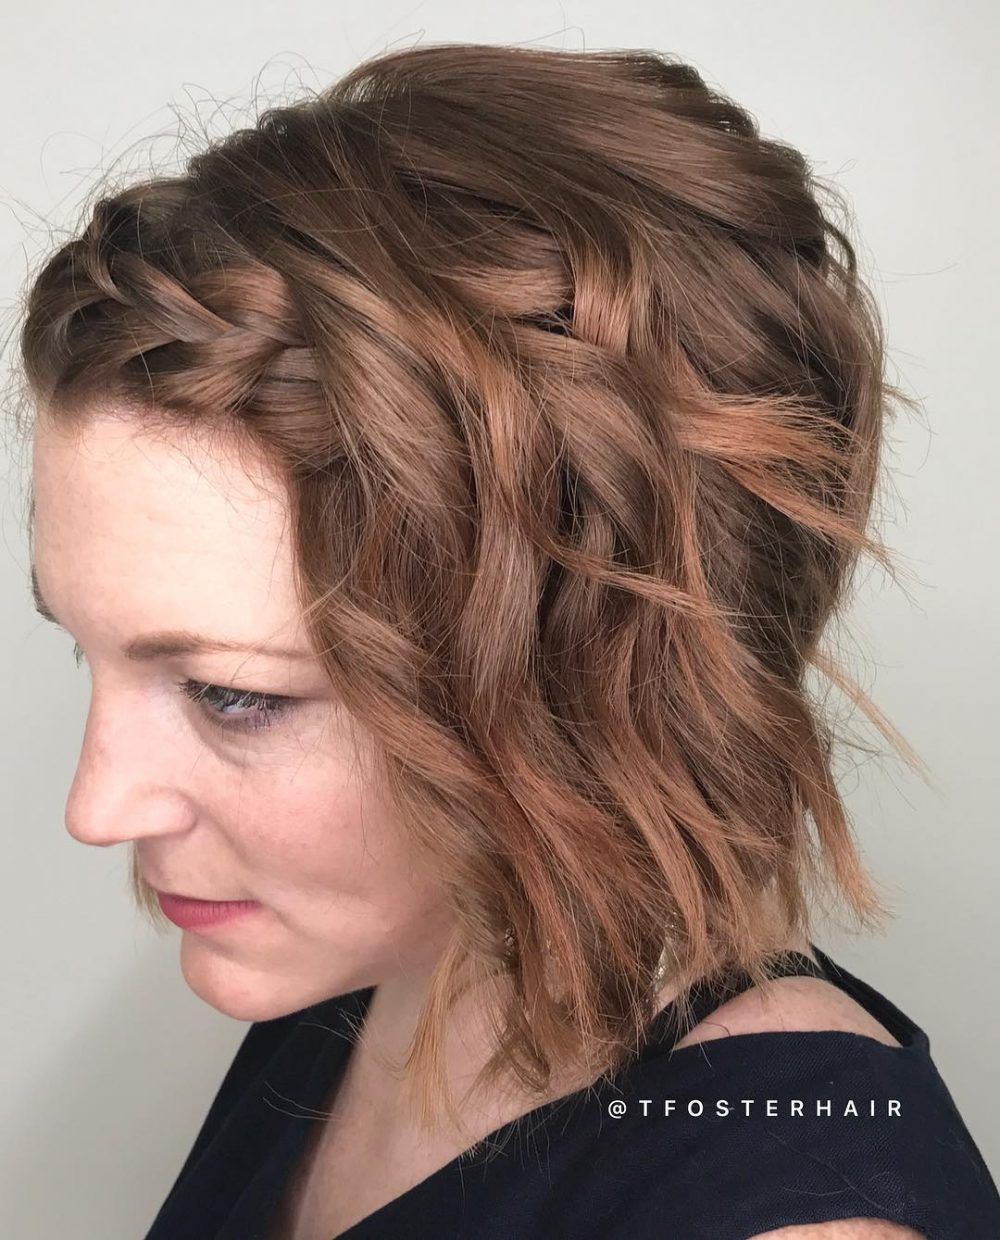 Effortless Glam hairstyle